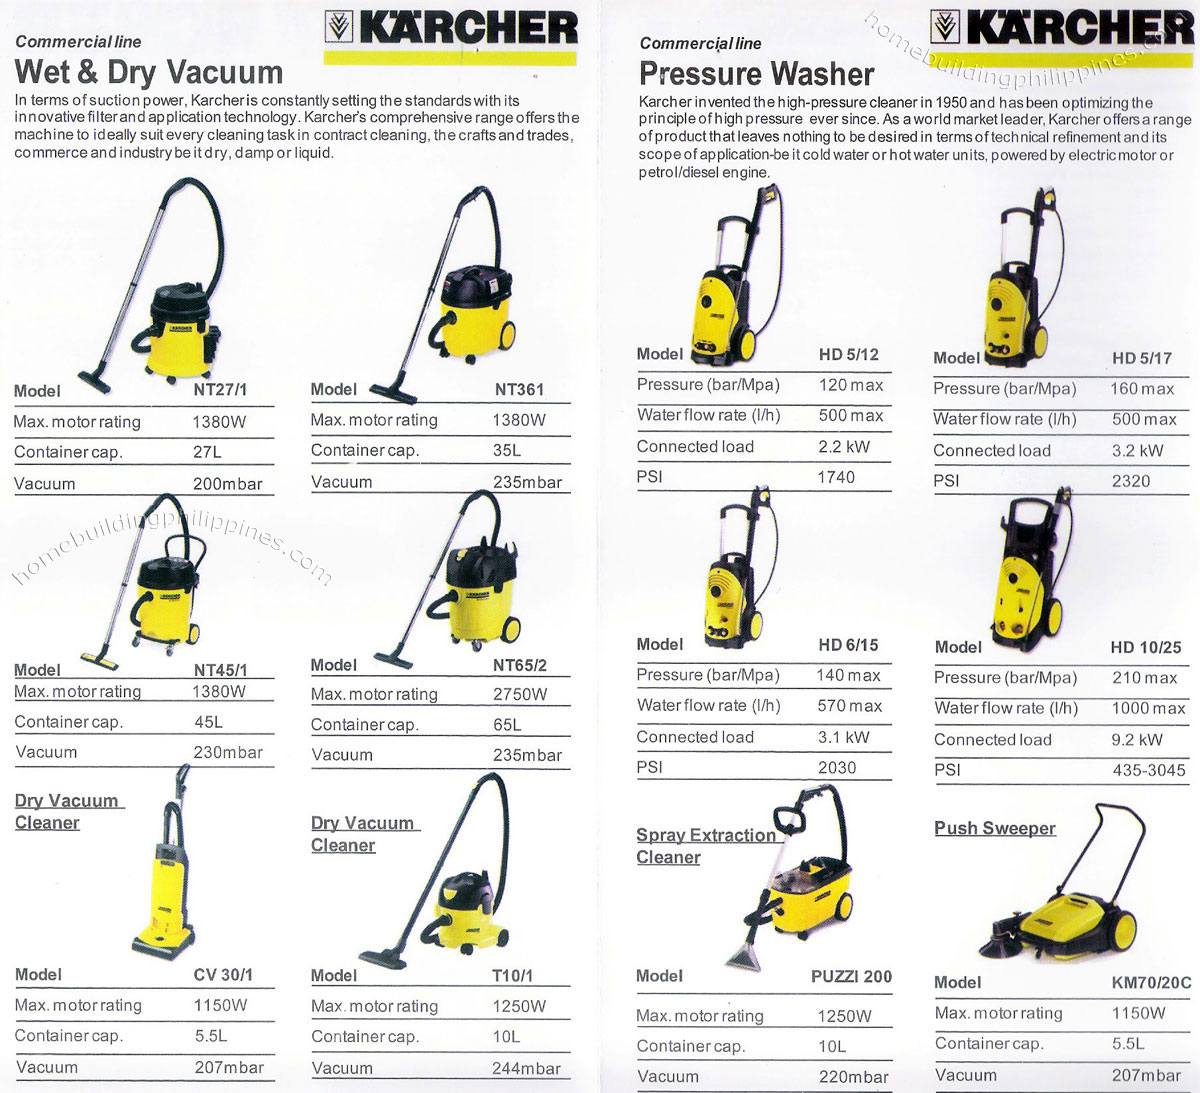 Commercial Washer: Karcher Commercial Washer